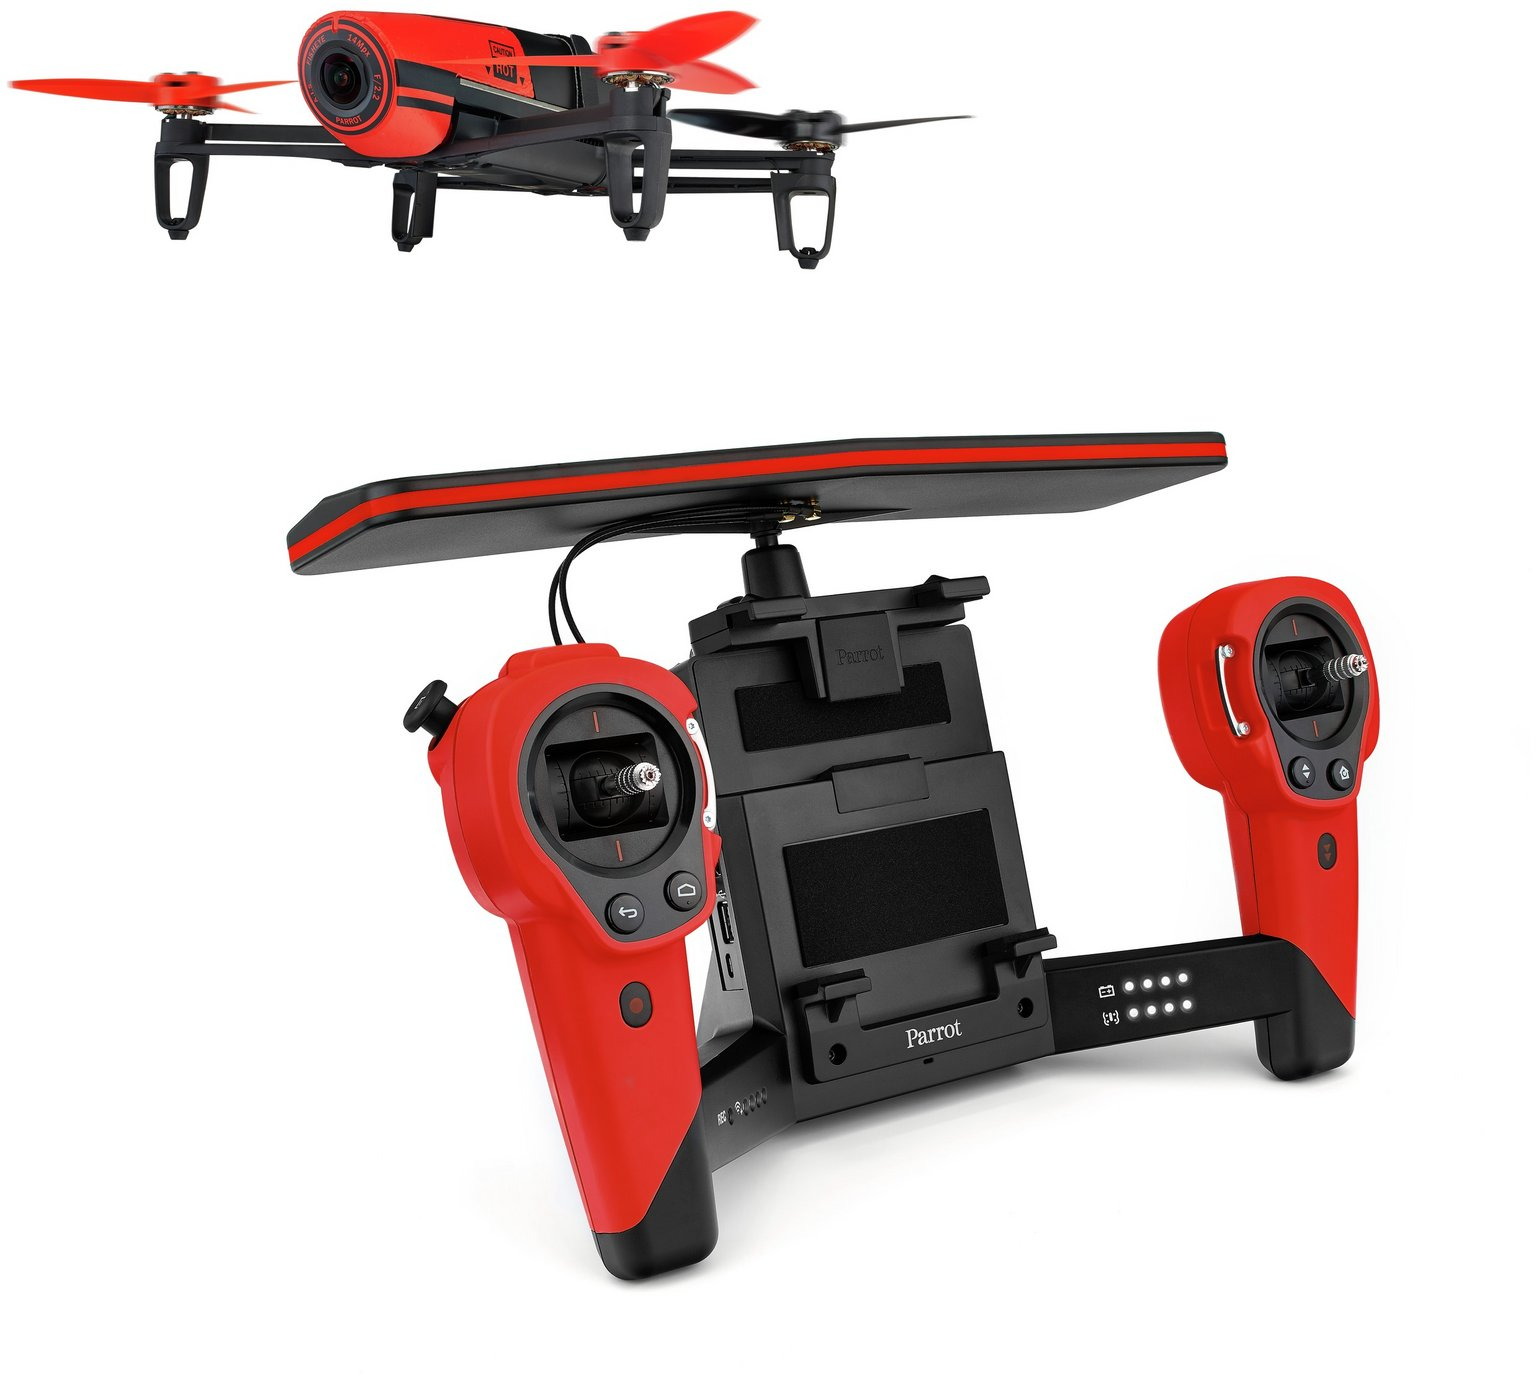 Parrot Bebop Drone with Skycontroller - Assorted Colours